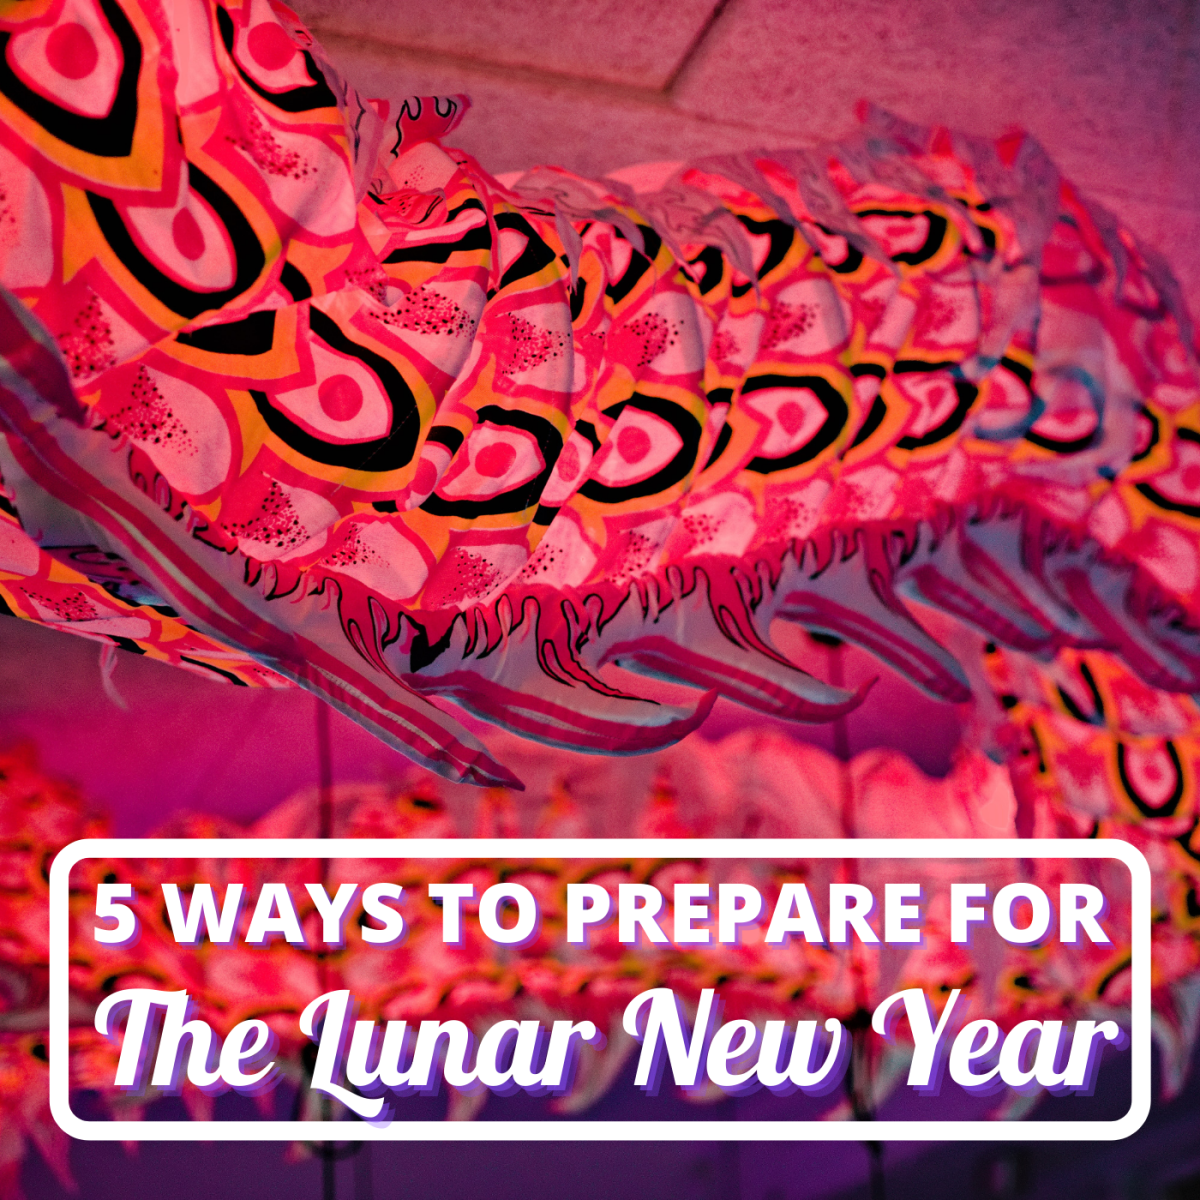 5 Ways to Prepare for the Chinese New Year